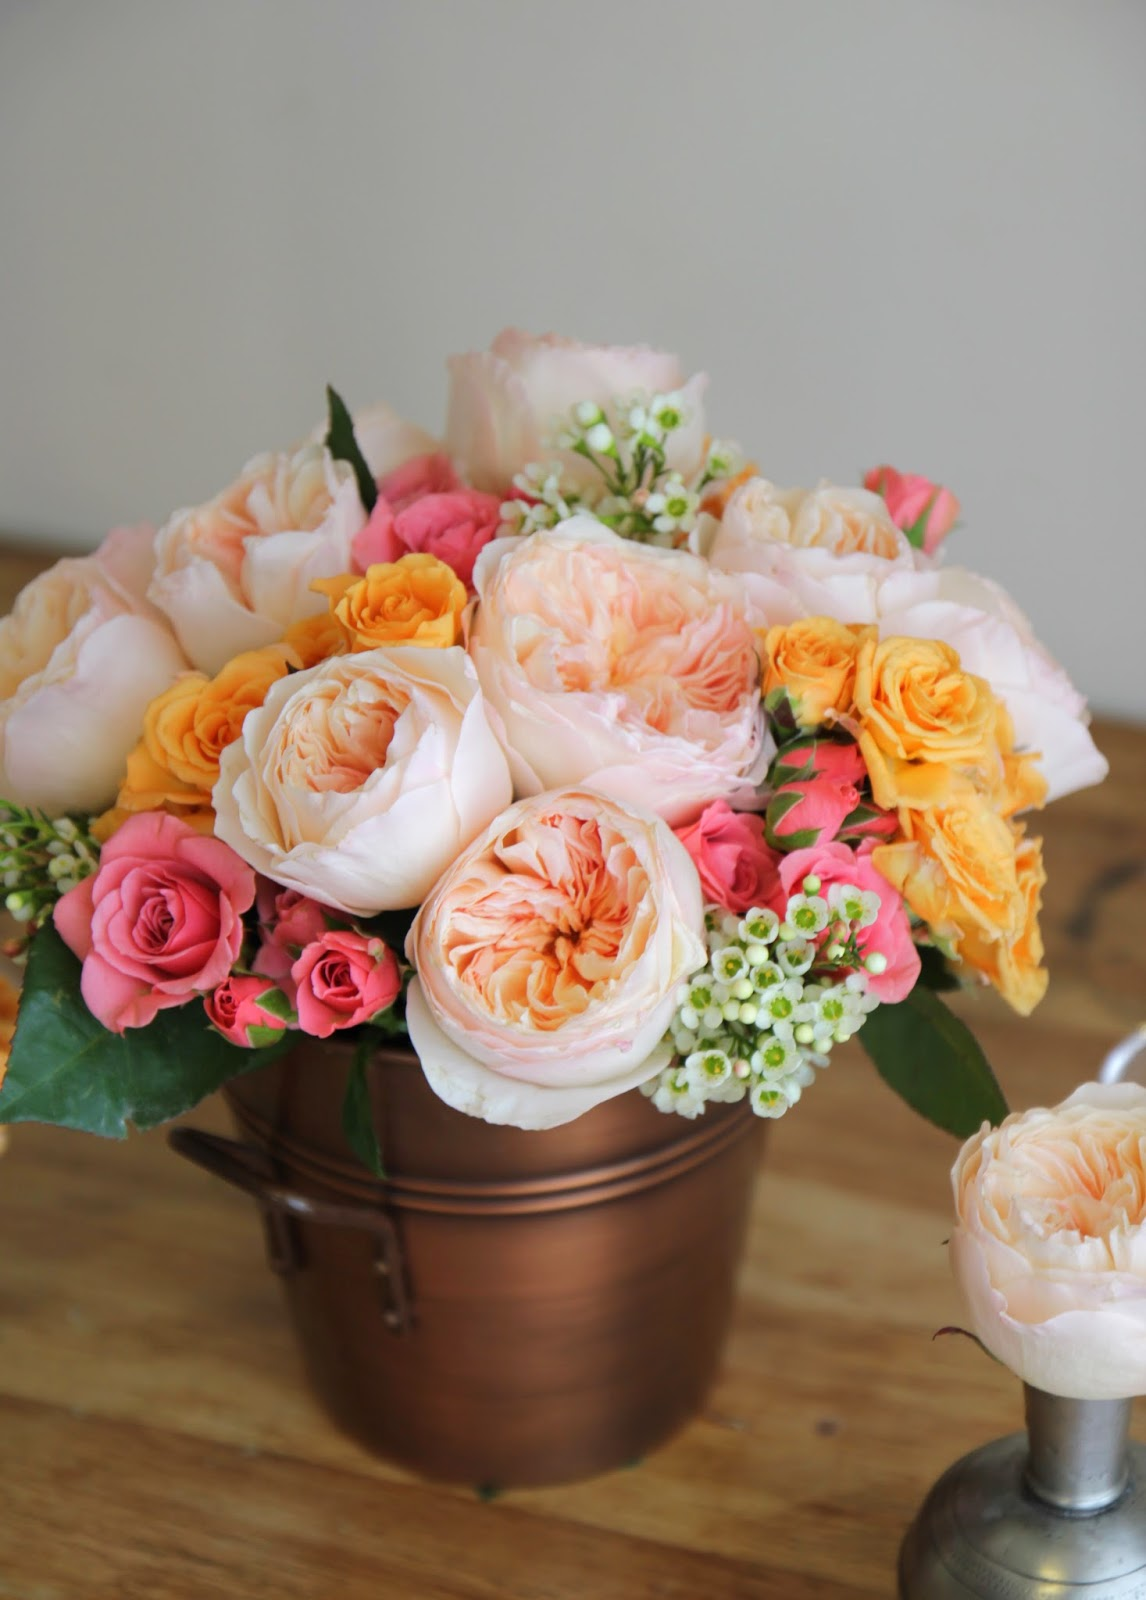 Jenny Steffens Hobick How to Arrange Flowers at Home